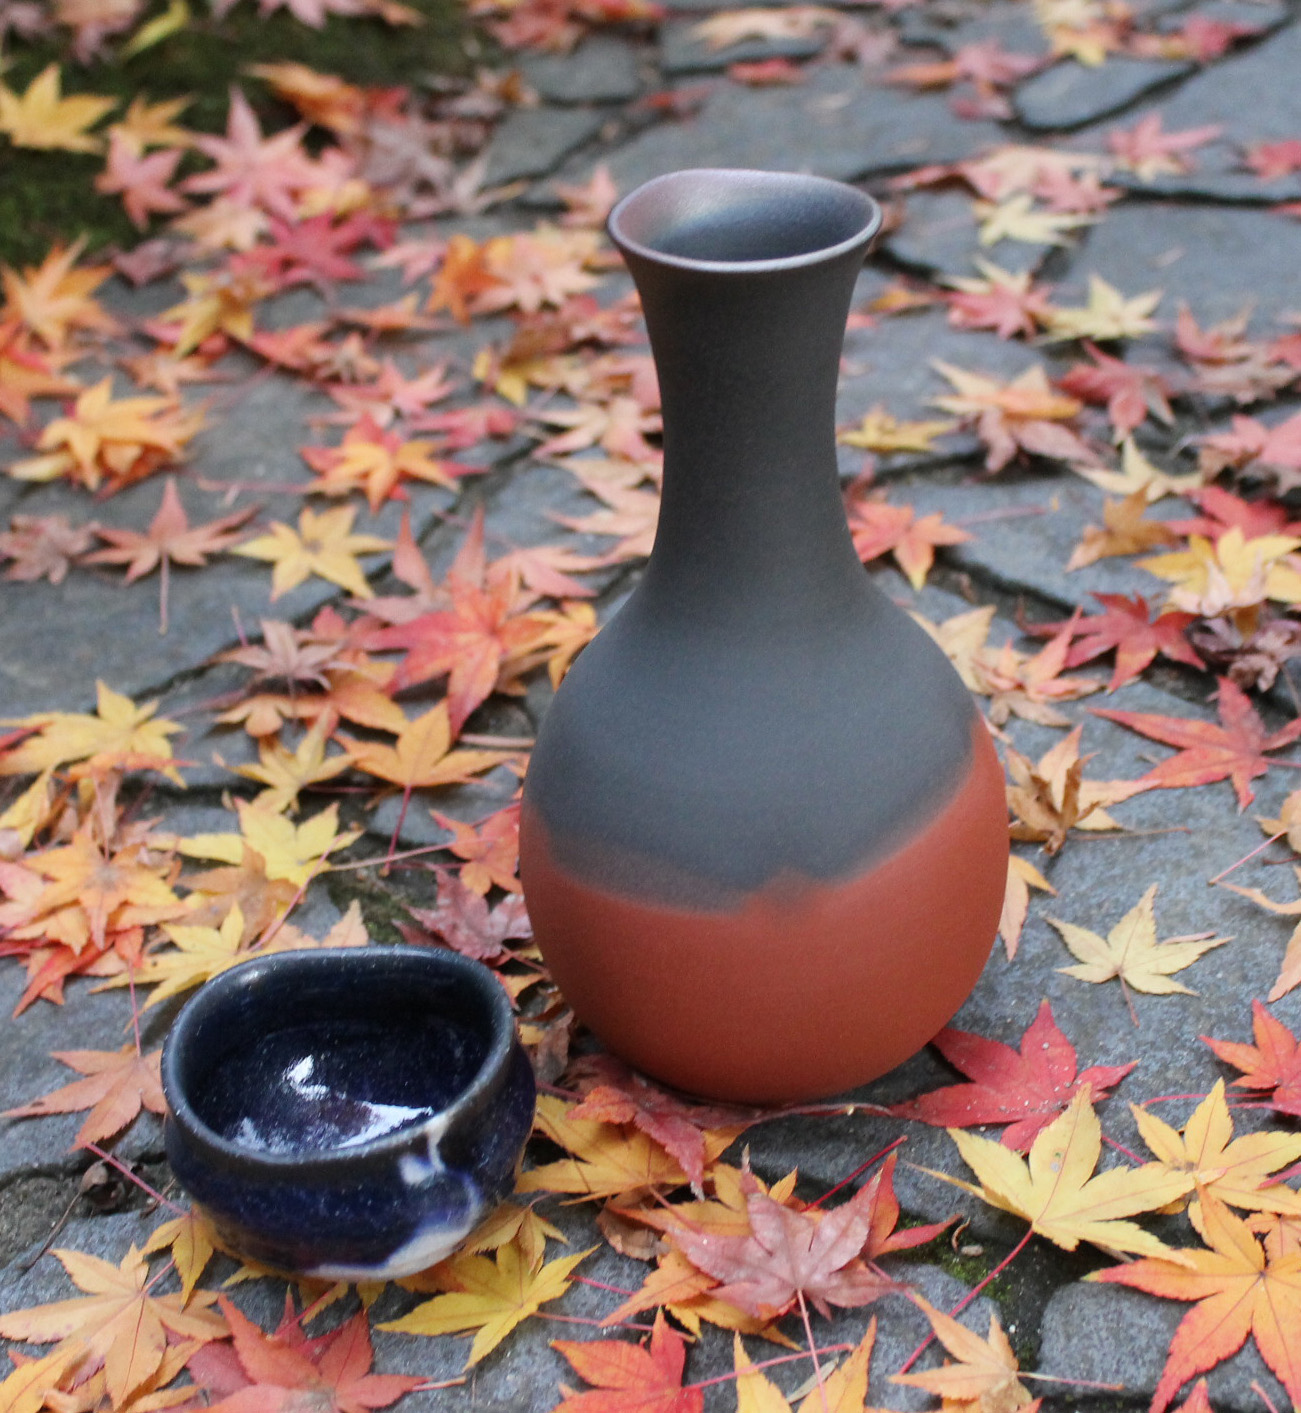 Mumyoi Vase by Living National Treasure Ito Sekisui